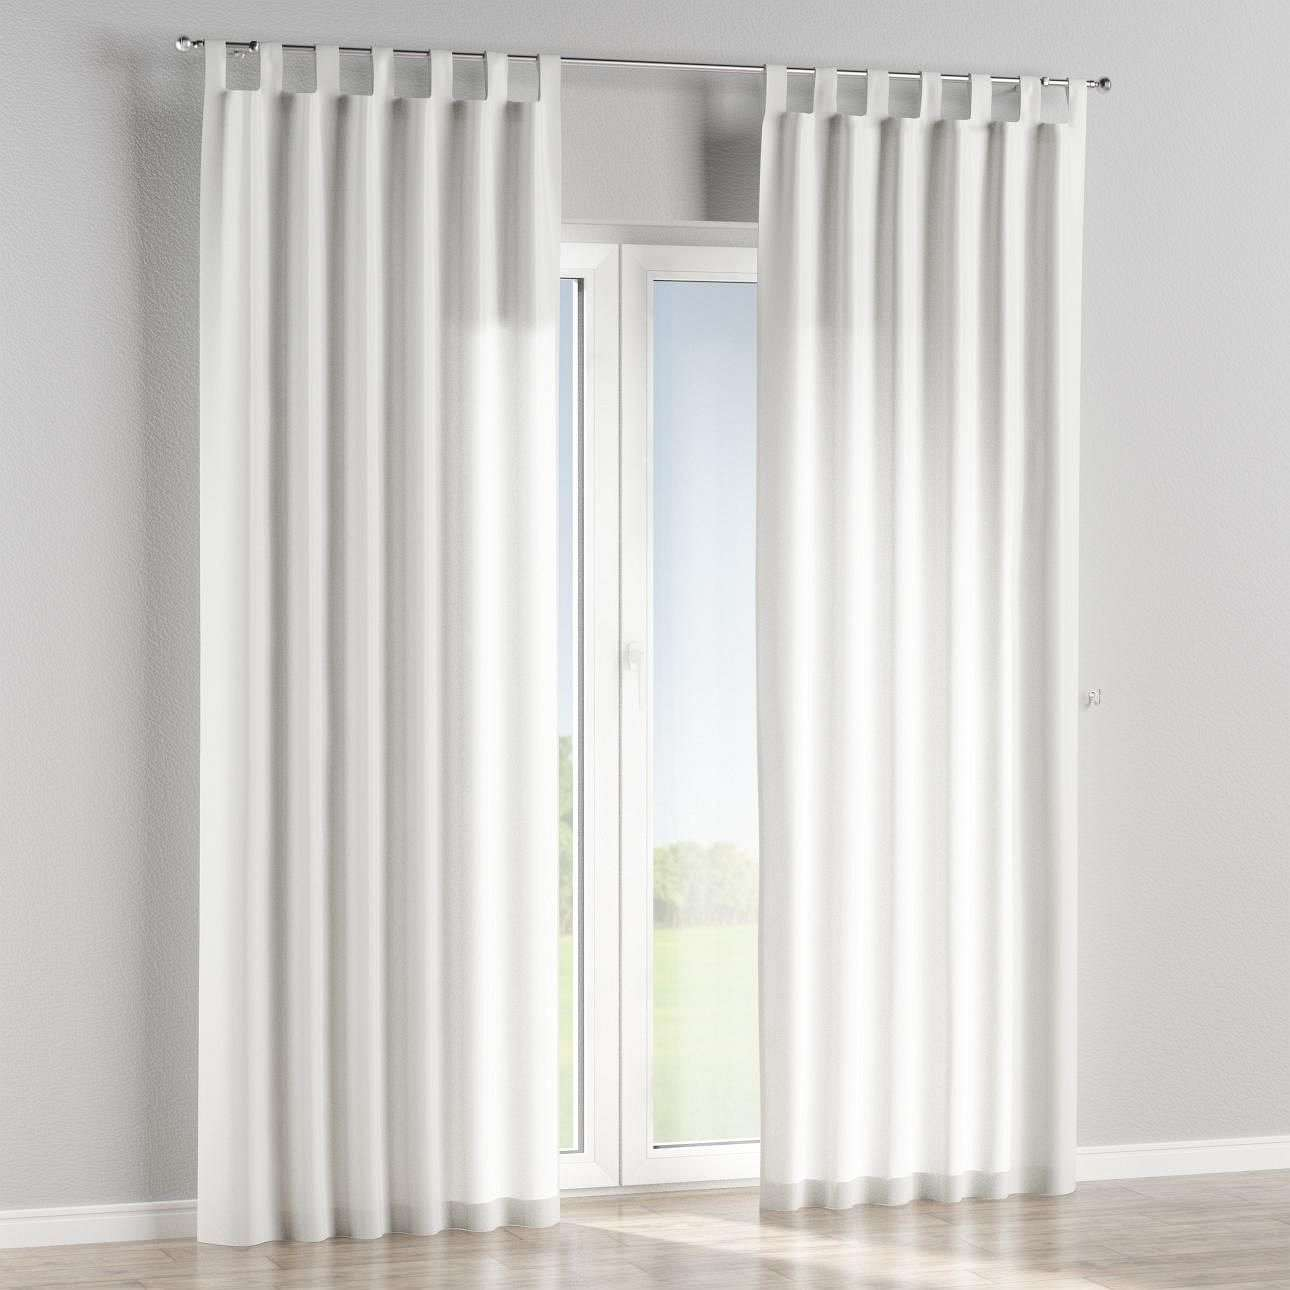 Tab top lined curtains in collection Rustica, fabric: 140-59